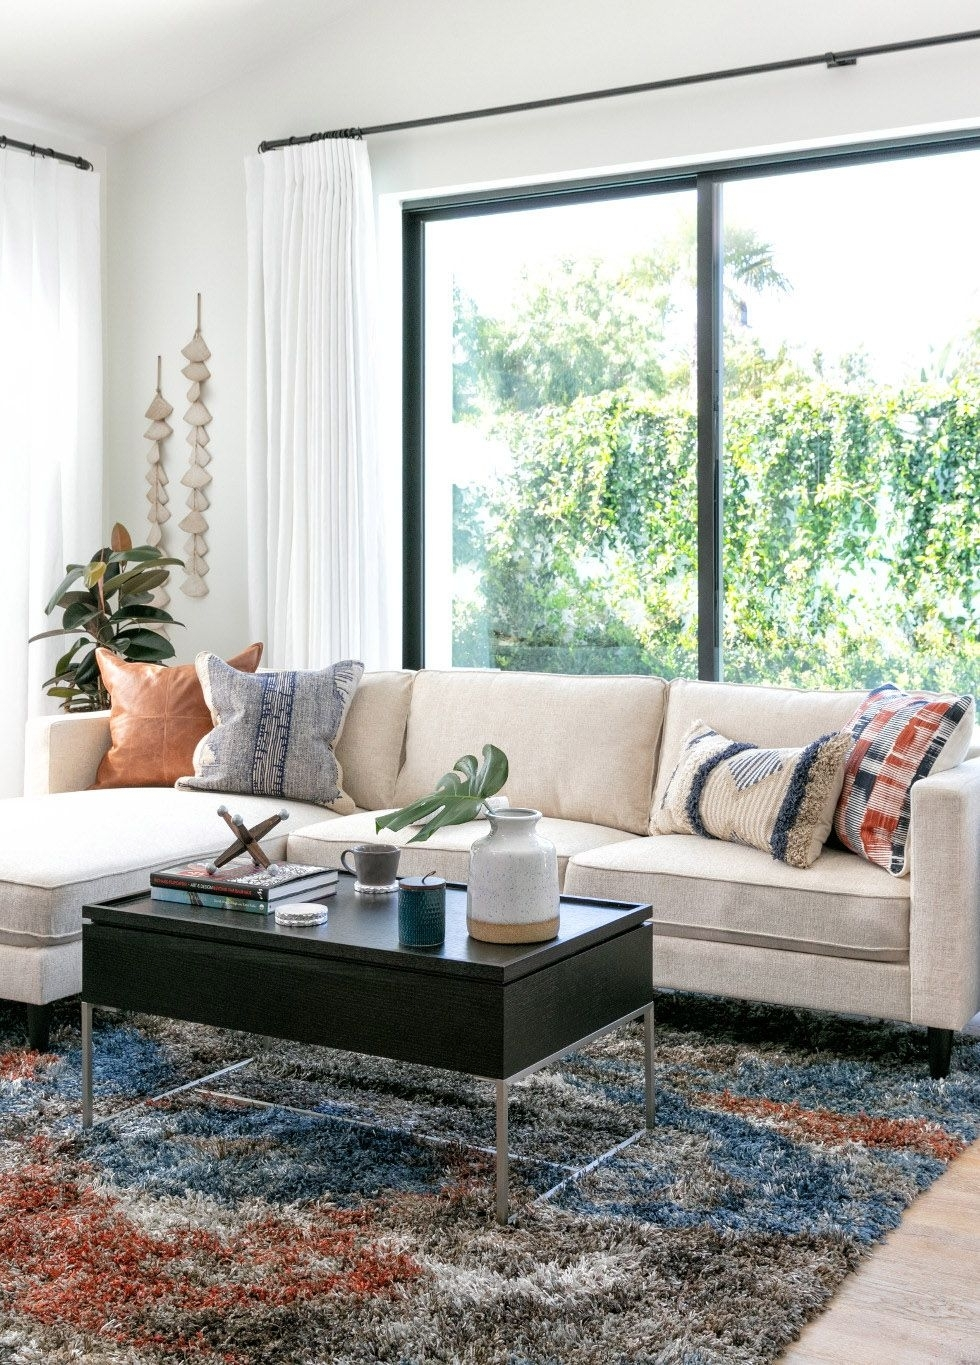 Cosmos Natural 2 Piece Sectional W/laf Chaise In 2018 | Sofas And intended for Cosmos Grey 2 Piece Sectionals With Raf Chaise (Image 9 of 30)